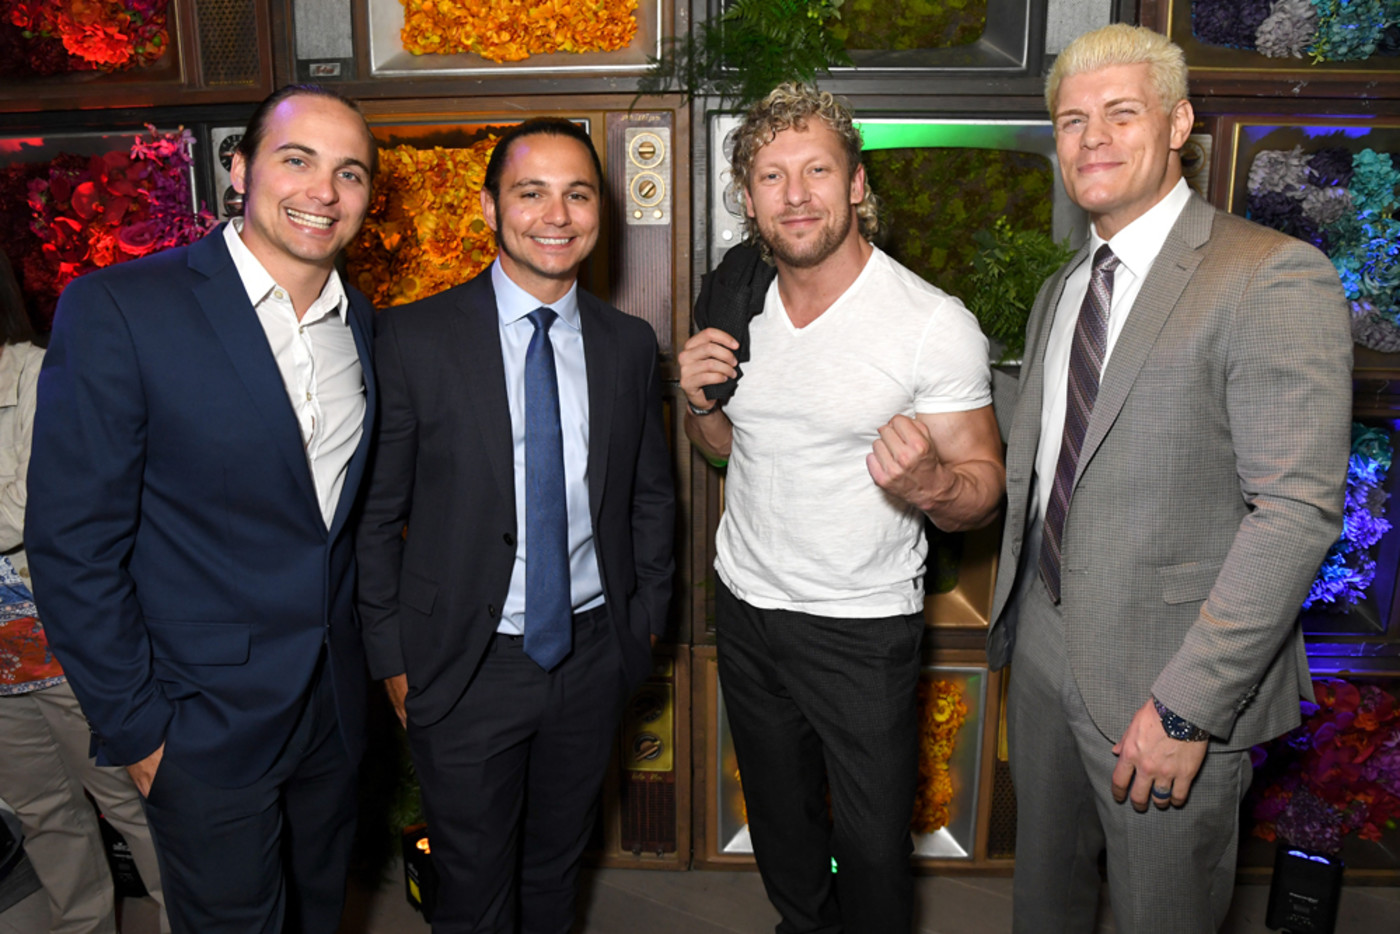 Nick Jackson, Matt Jackson, Kenny Omega and Cody Rhodes